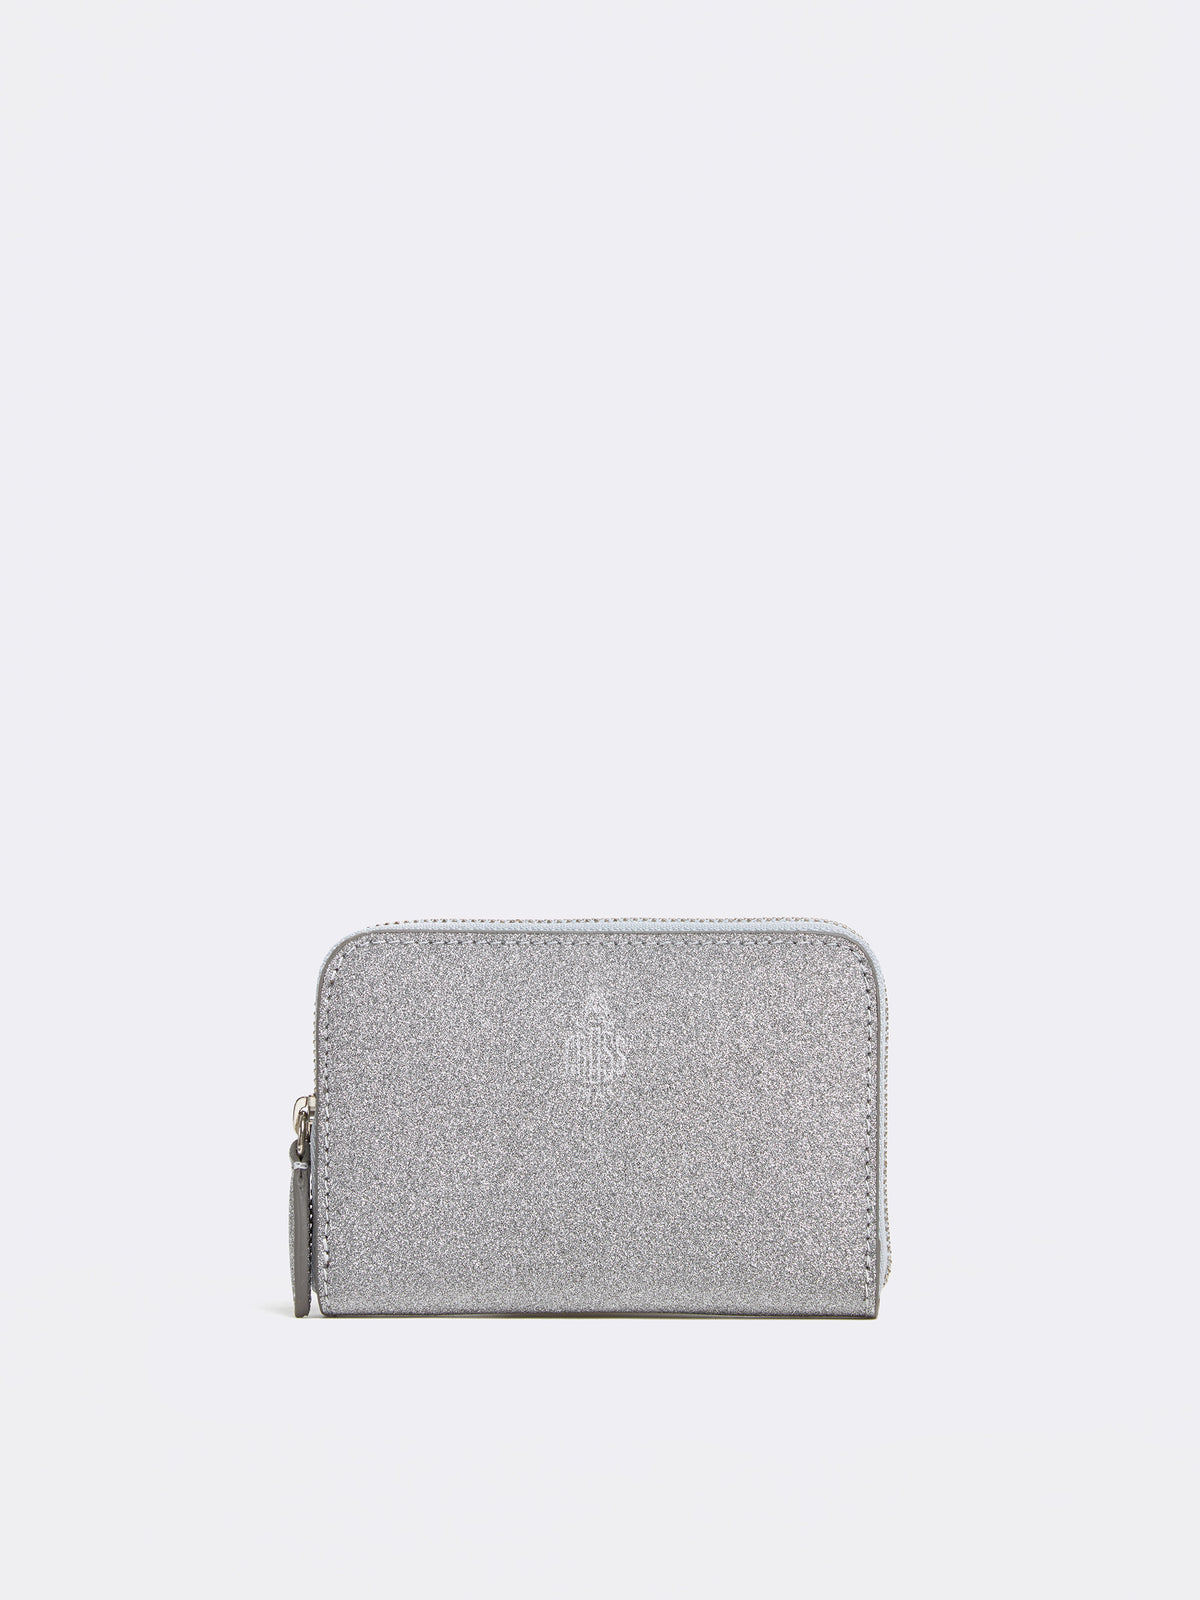 Mark Cross Mini Leather Zip Wallet Luminous Glitter Silver Front